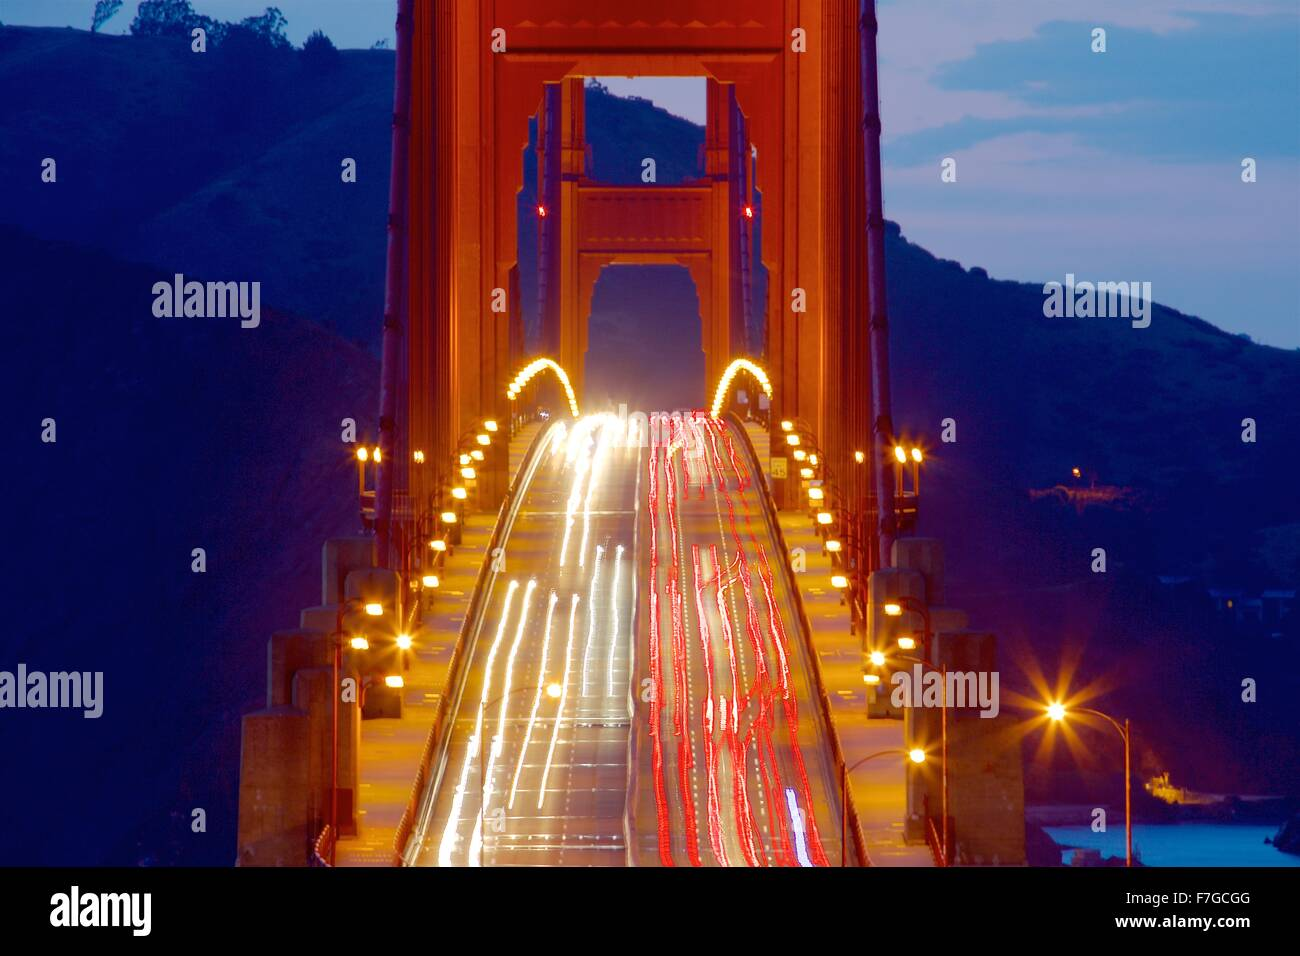 Golden Gate Bridge with commute traffic at night  Commute traffic at night in San Francisco, California - Stock Image